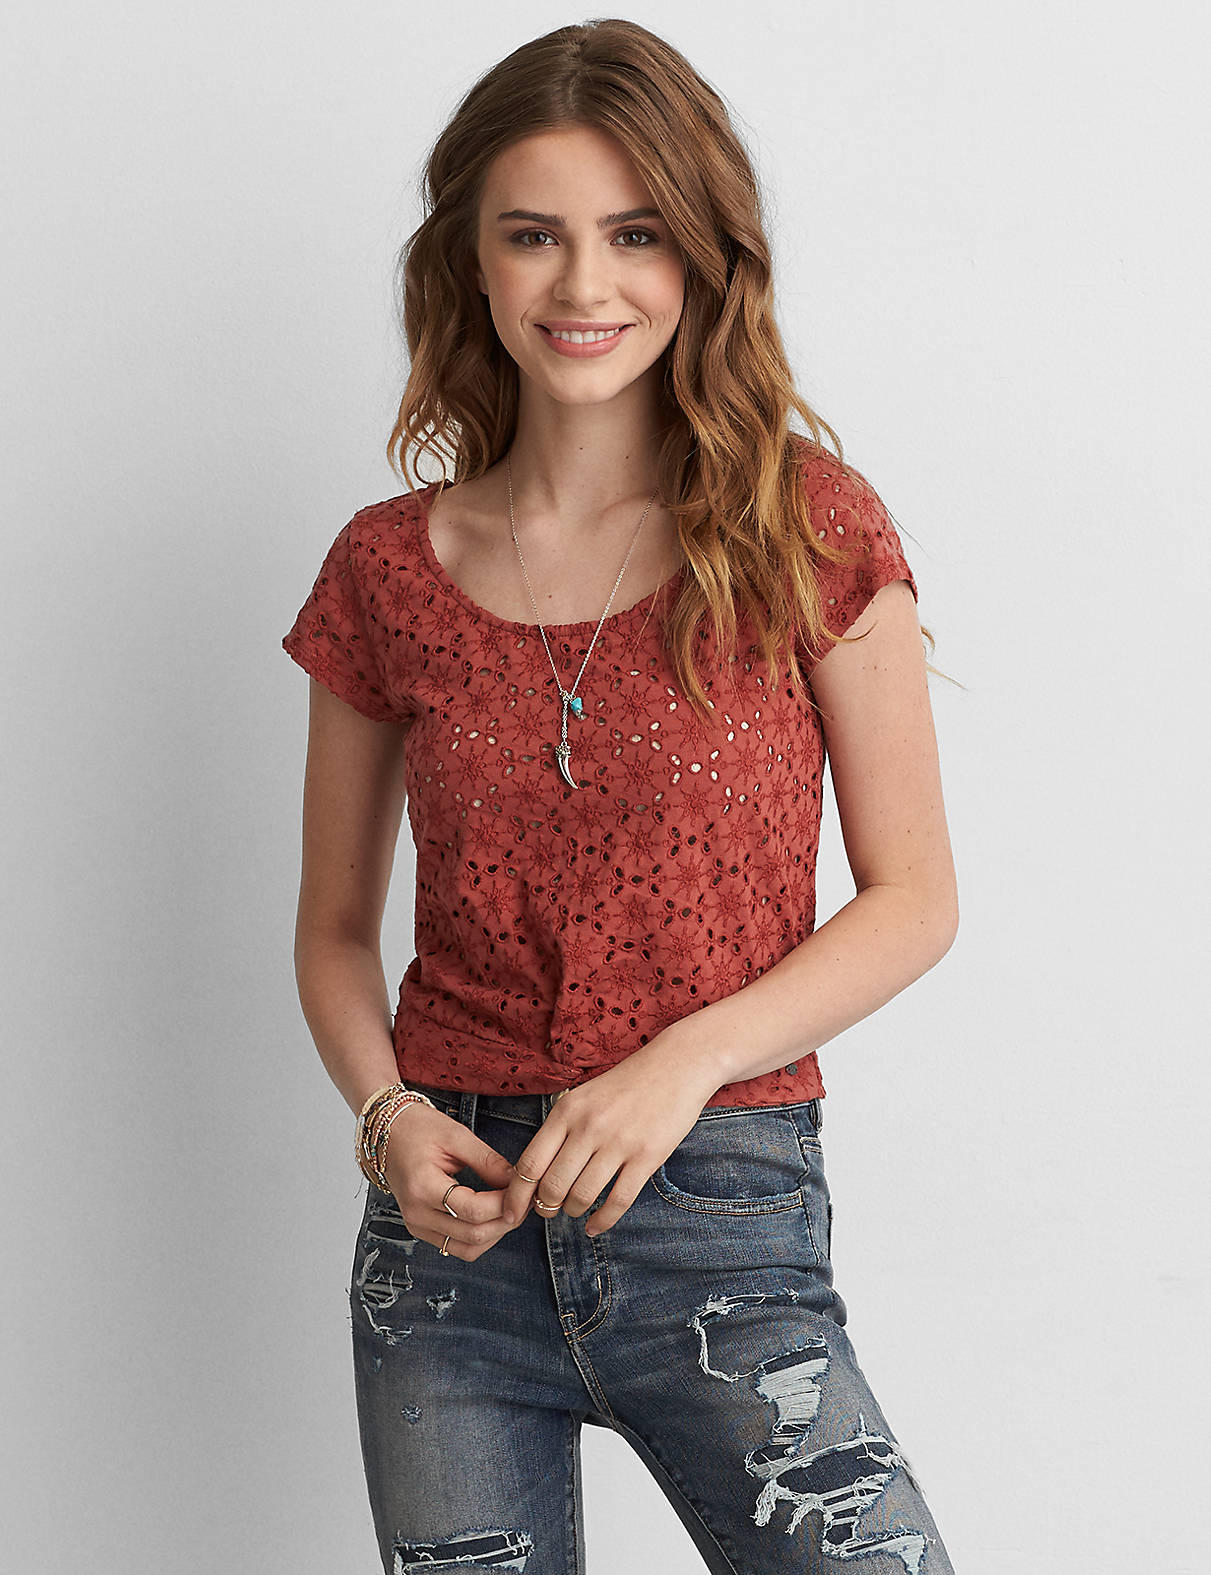 50% Off Clearance @ American Eagle